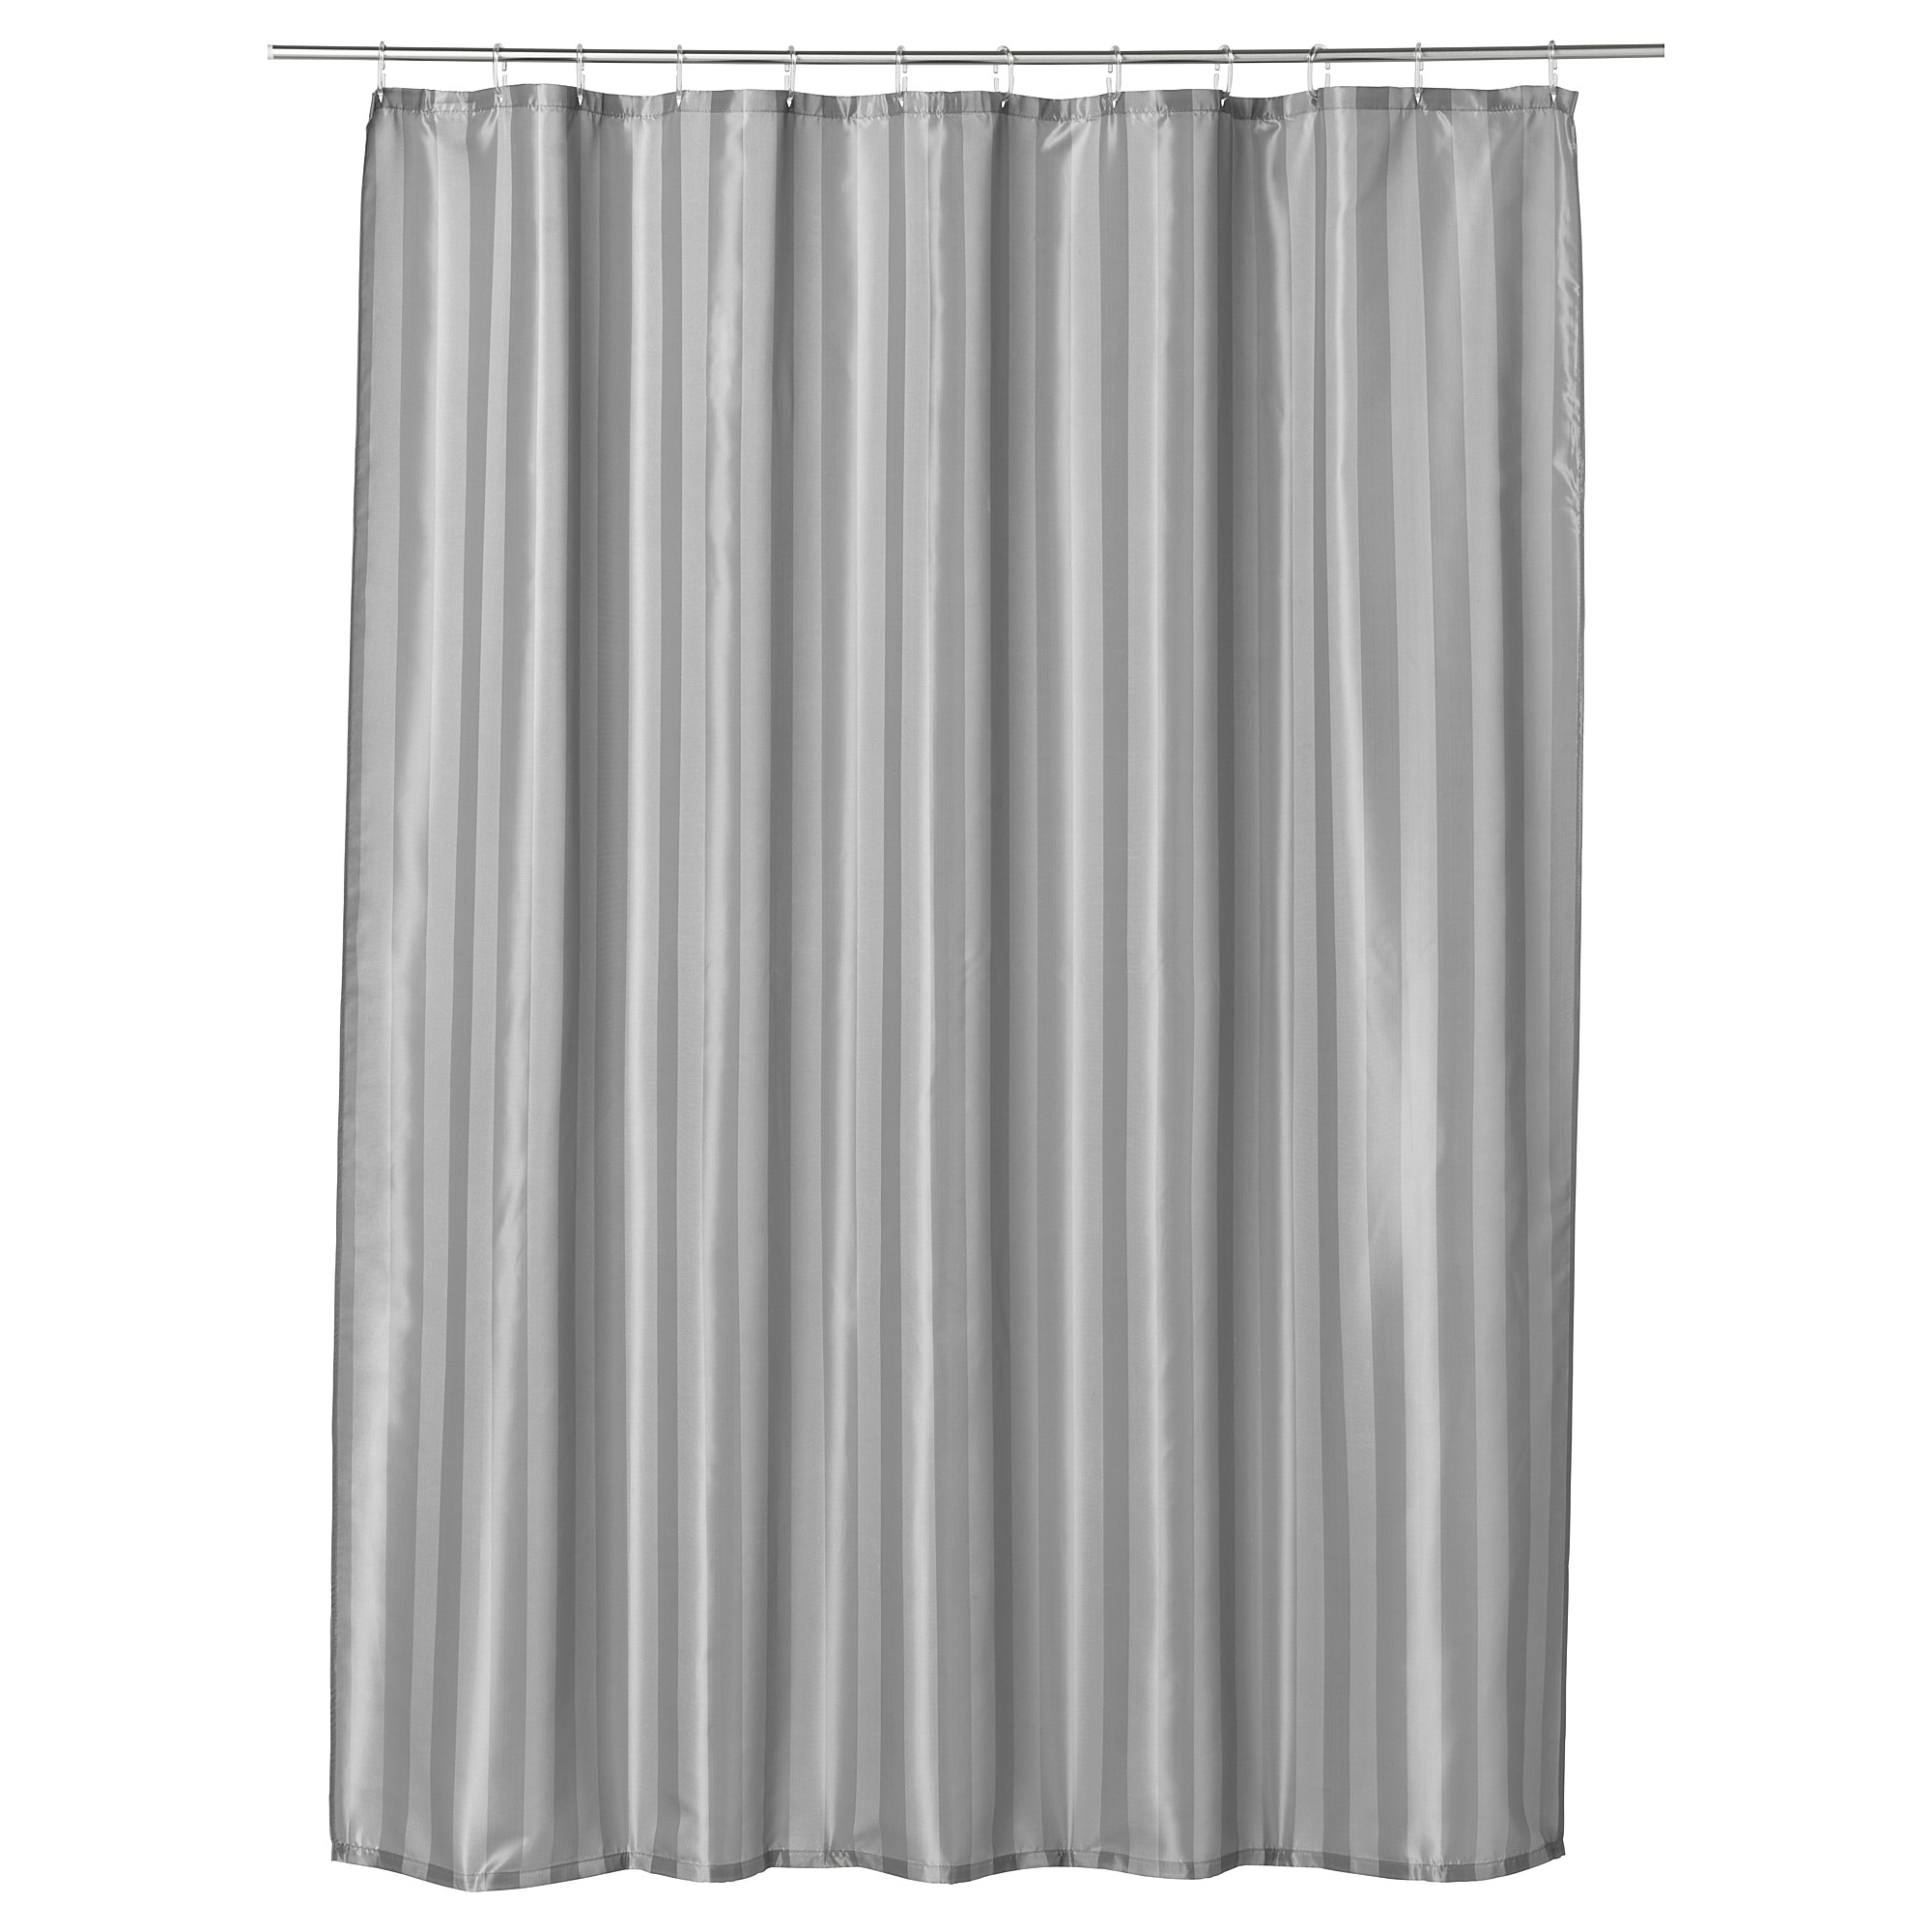 SALTGRUND Shower Curtain Gray